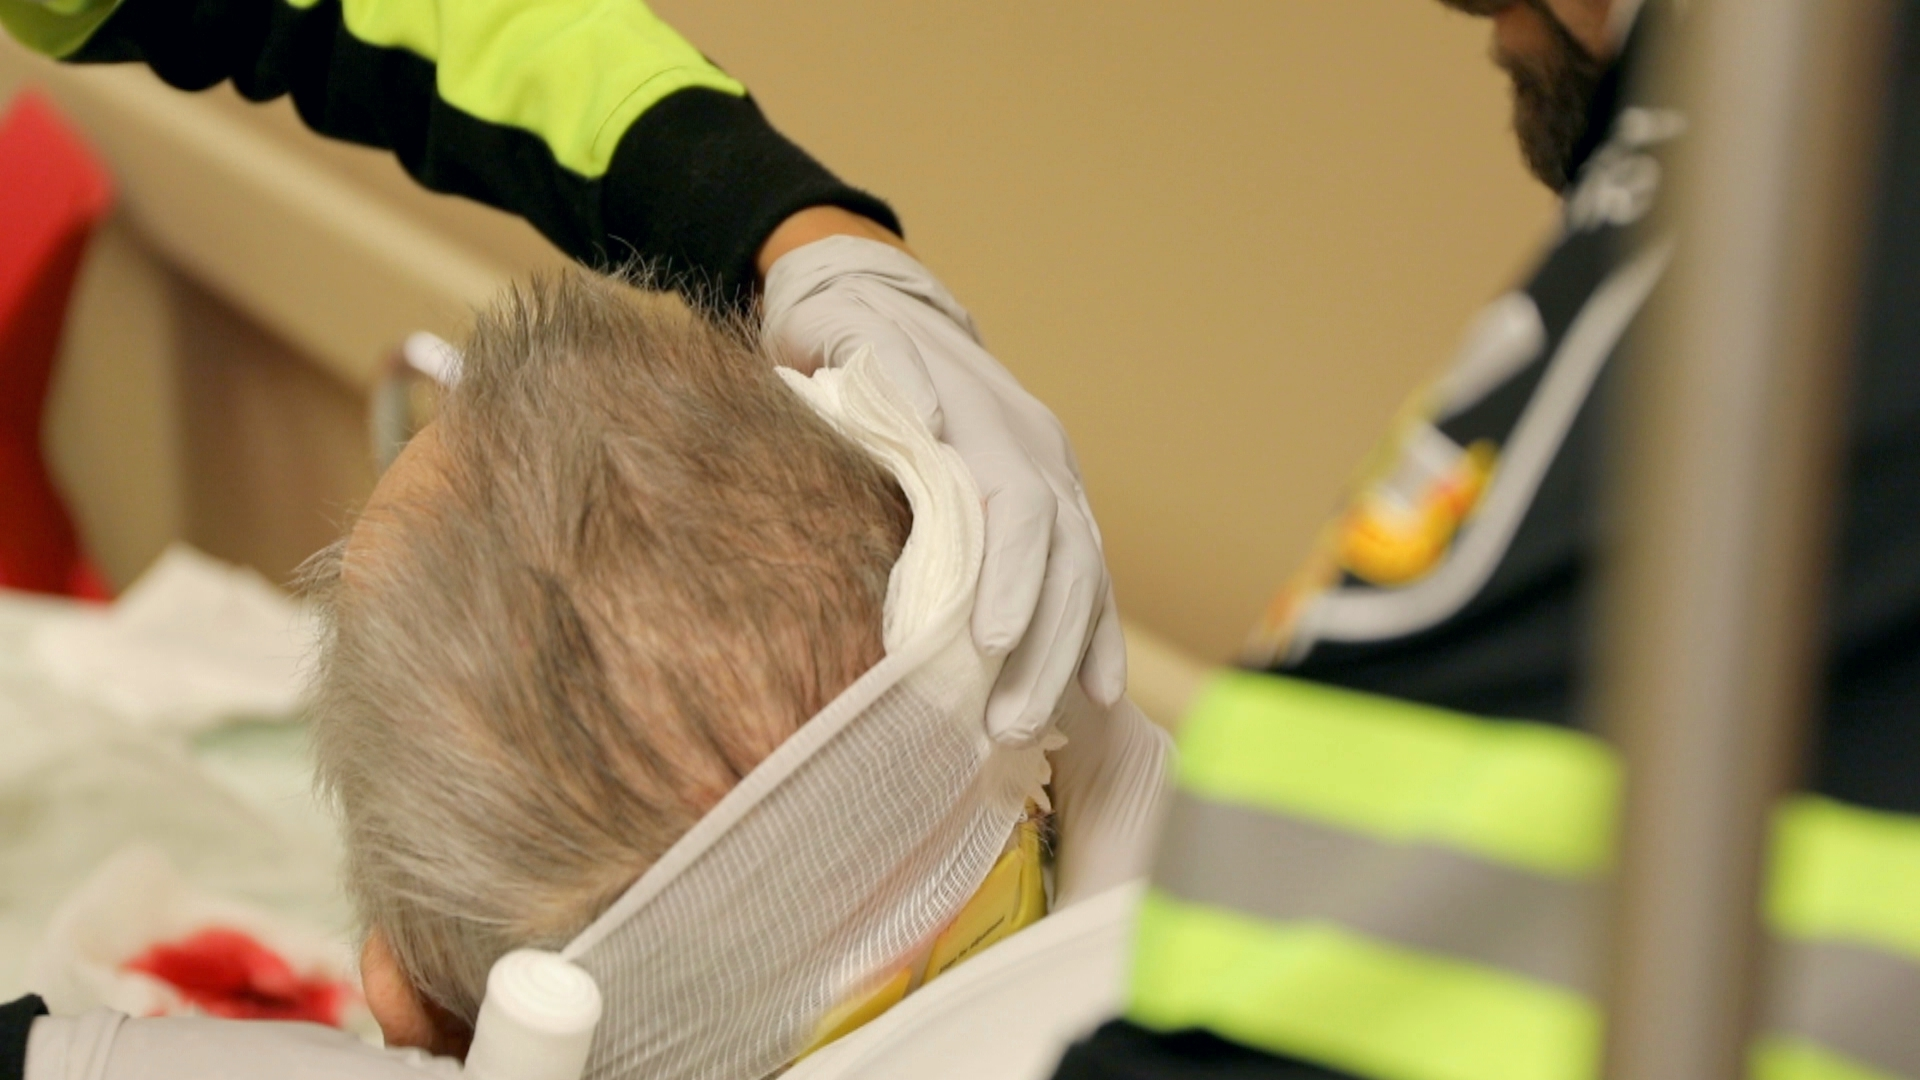 The emergency responders bandage the patient's head wound. (Paul Borkwood/CBC News)